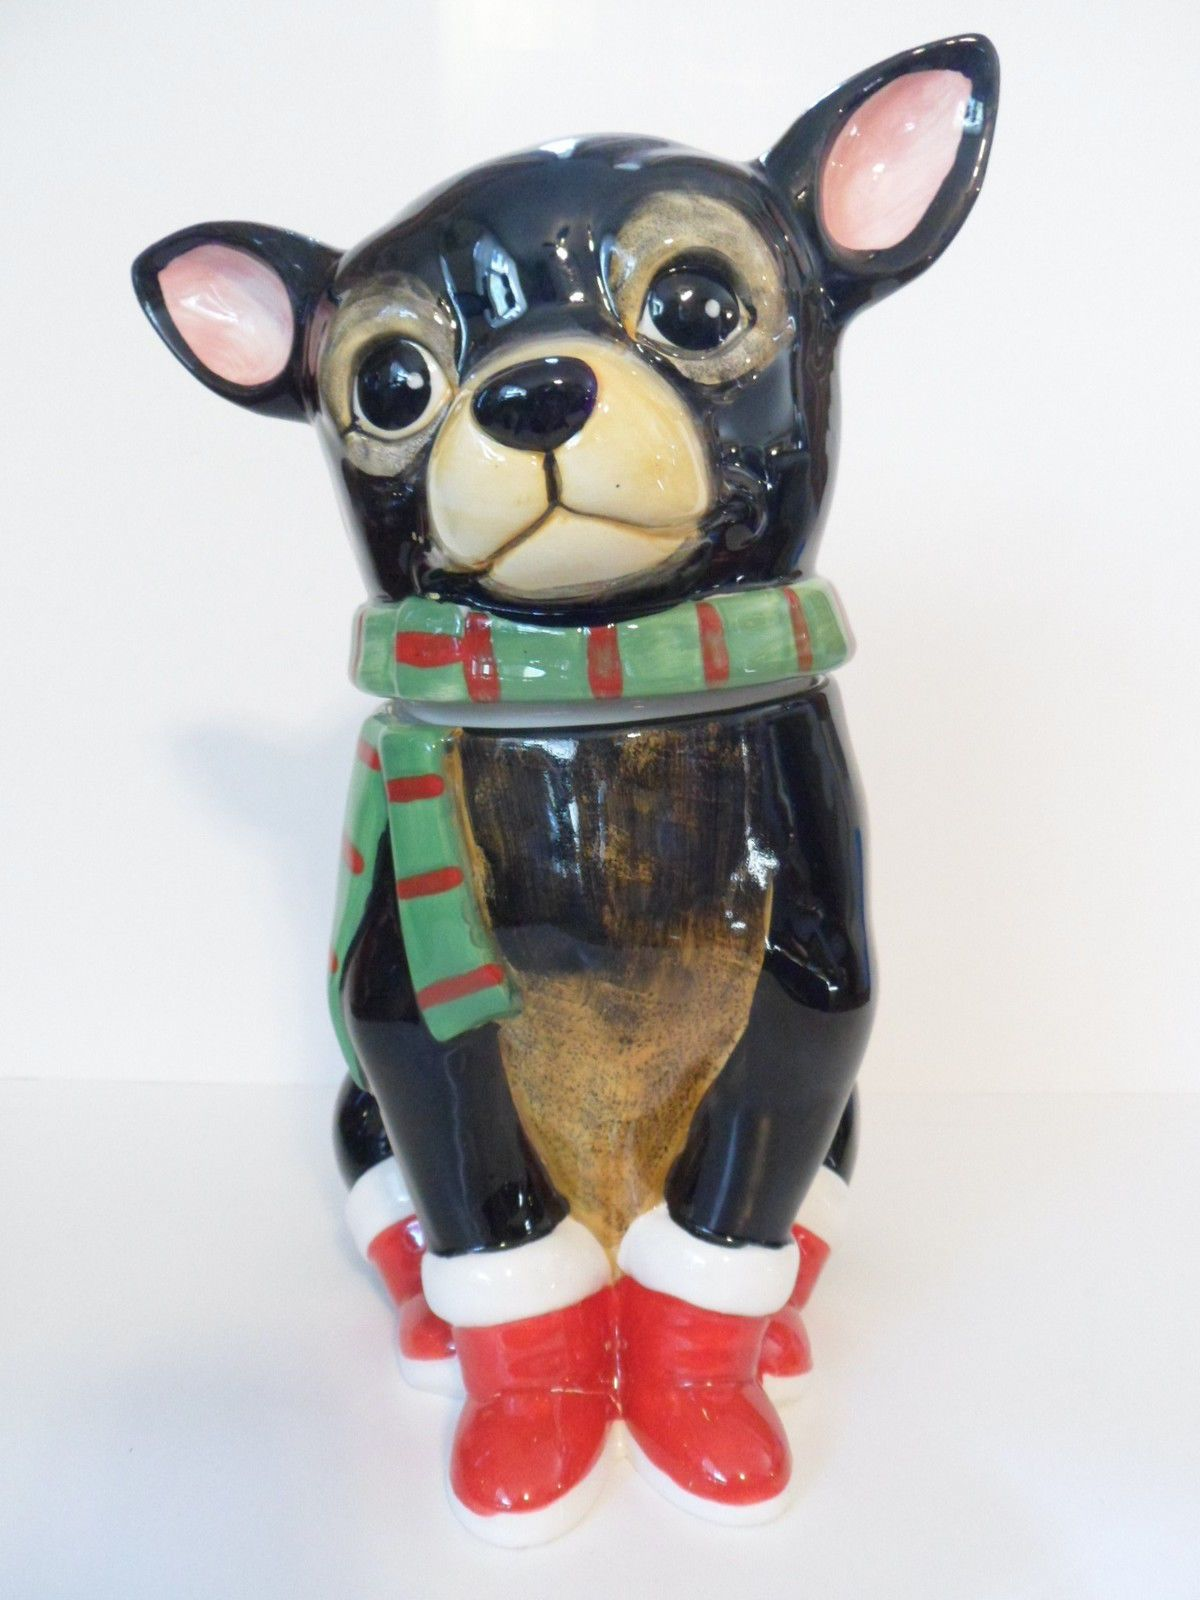 Chihuahua Cookie Jar Glamorous Starbucks San Francisco 2015 Ceramic Holiday Christmas Ornament